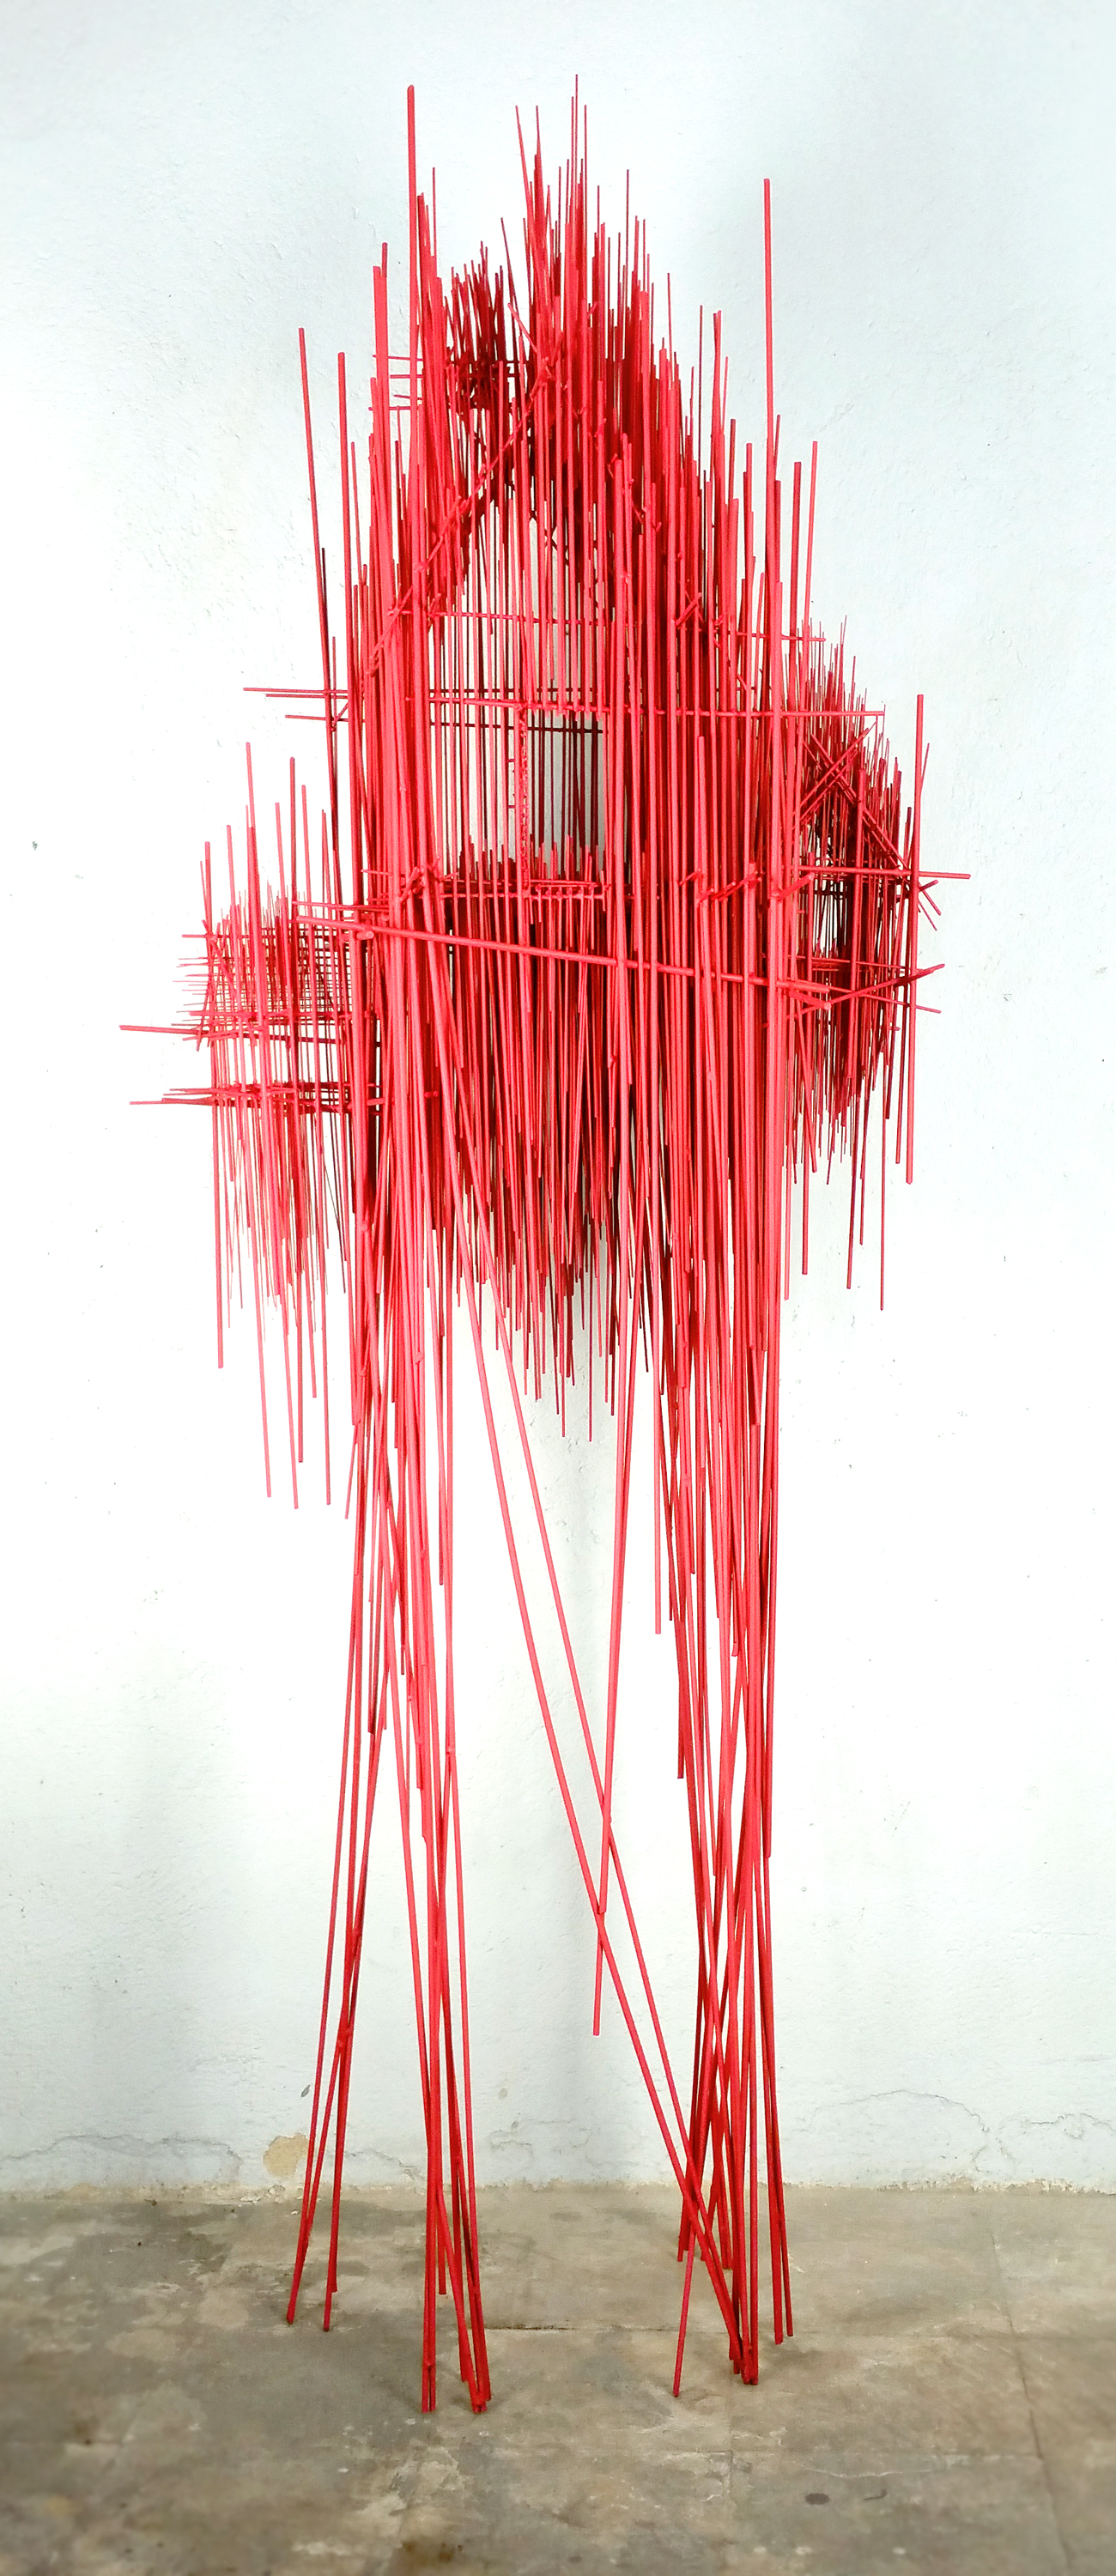 New Architectural Sculptures by David Moreno Appear As Three Dimensional Drawings